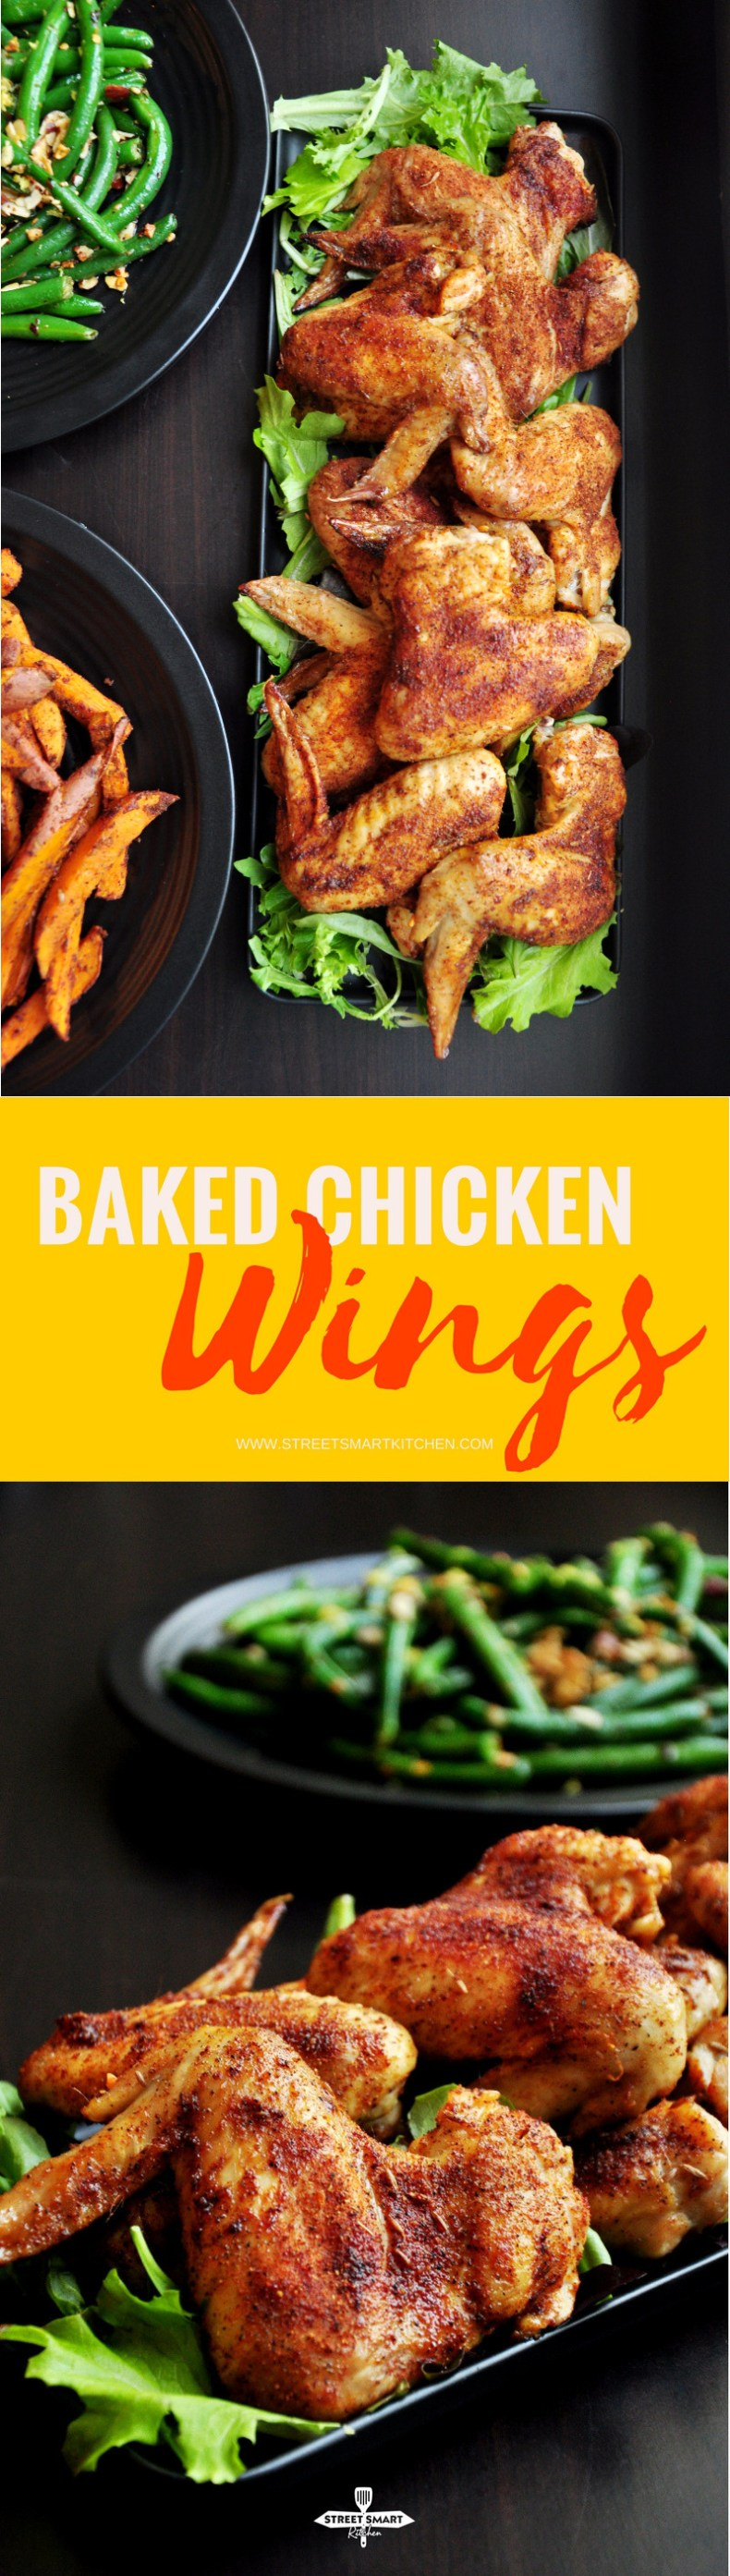 Mouthwatering baked chicken wings with savory crispy skin that locks in a smoky cumin flavor and much more. It only takes 10 minutes of hands-on time.